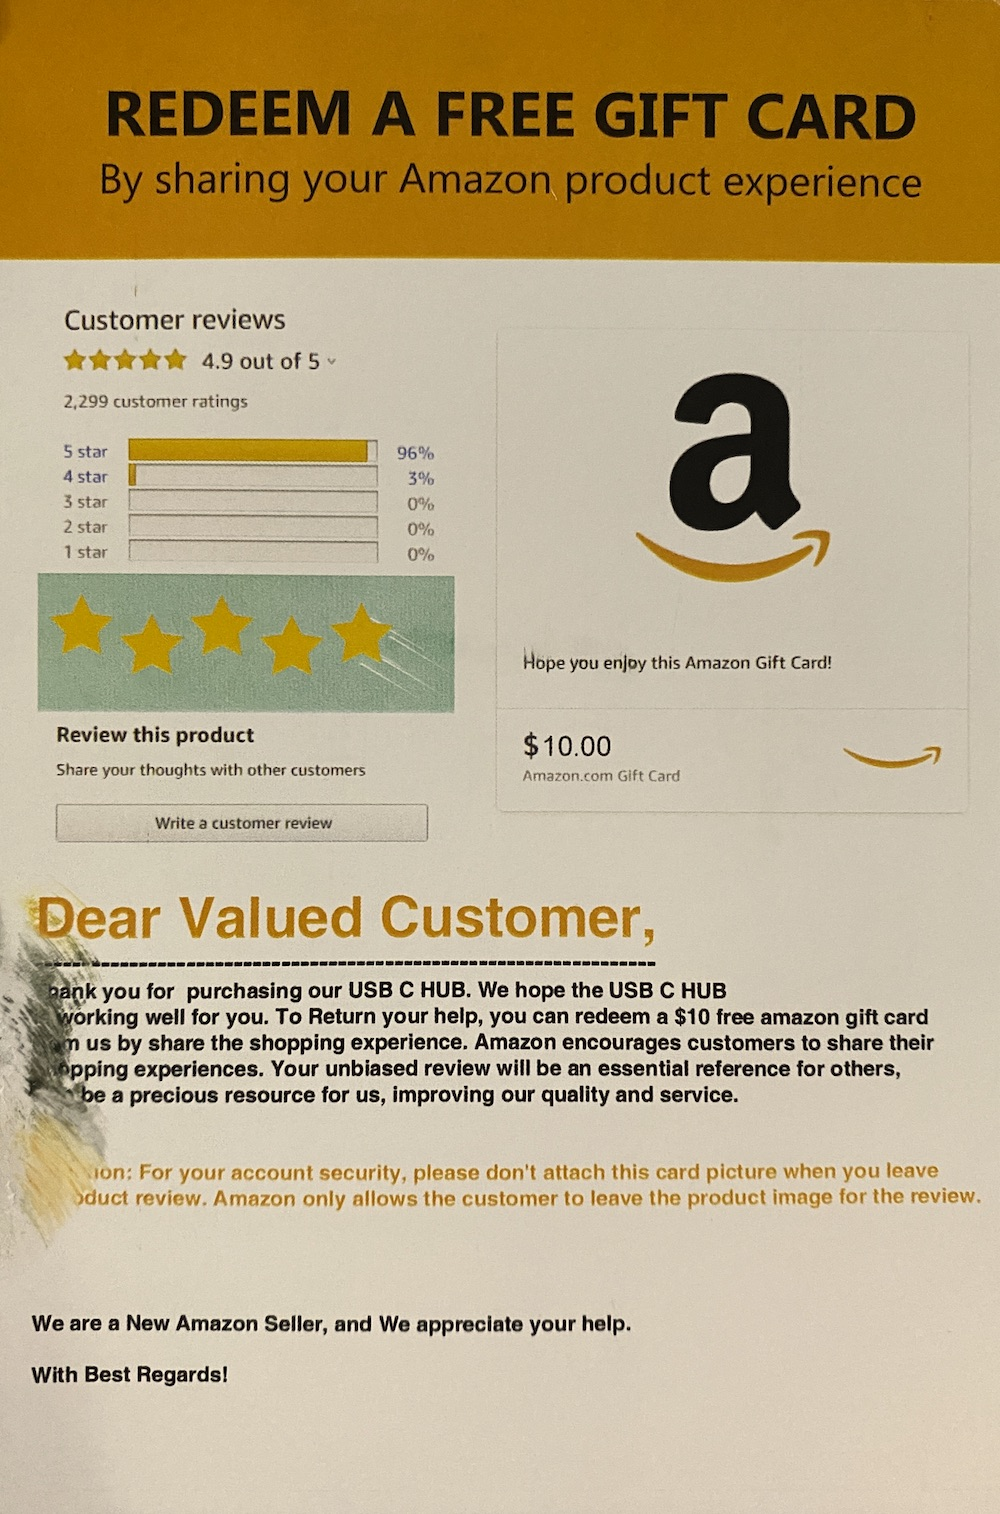 amazon-free-gift-card-after-review-1.jpg